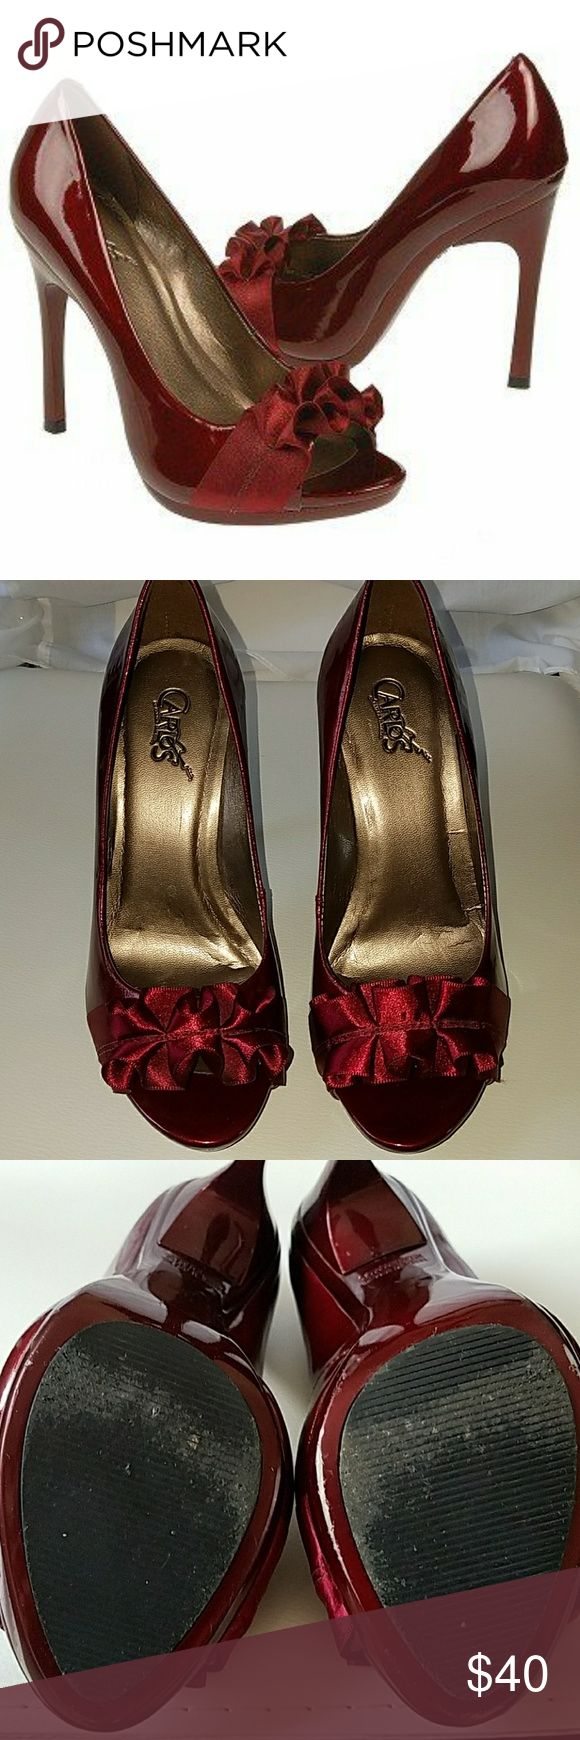 Carlos Santana Ruby Red Heels Patent leather high heels worn once for a wedding. Beautiful ruby red color and 4 in. heel. They are in great condition and just need someone else with smaller feet to love them! Carlos Santana Shoes Heels